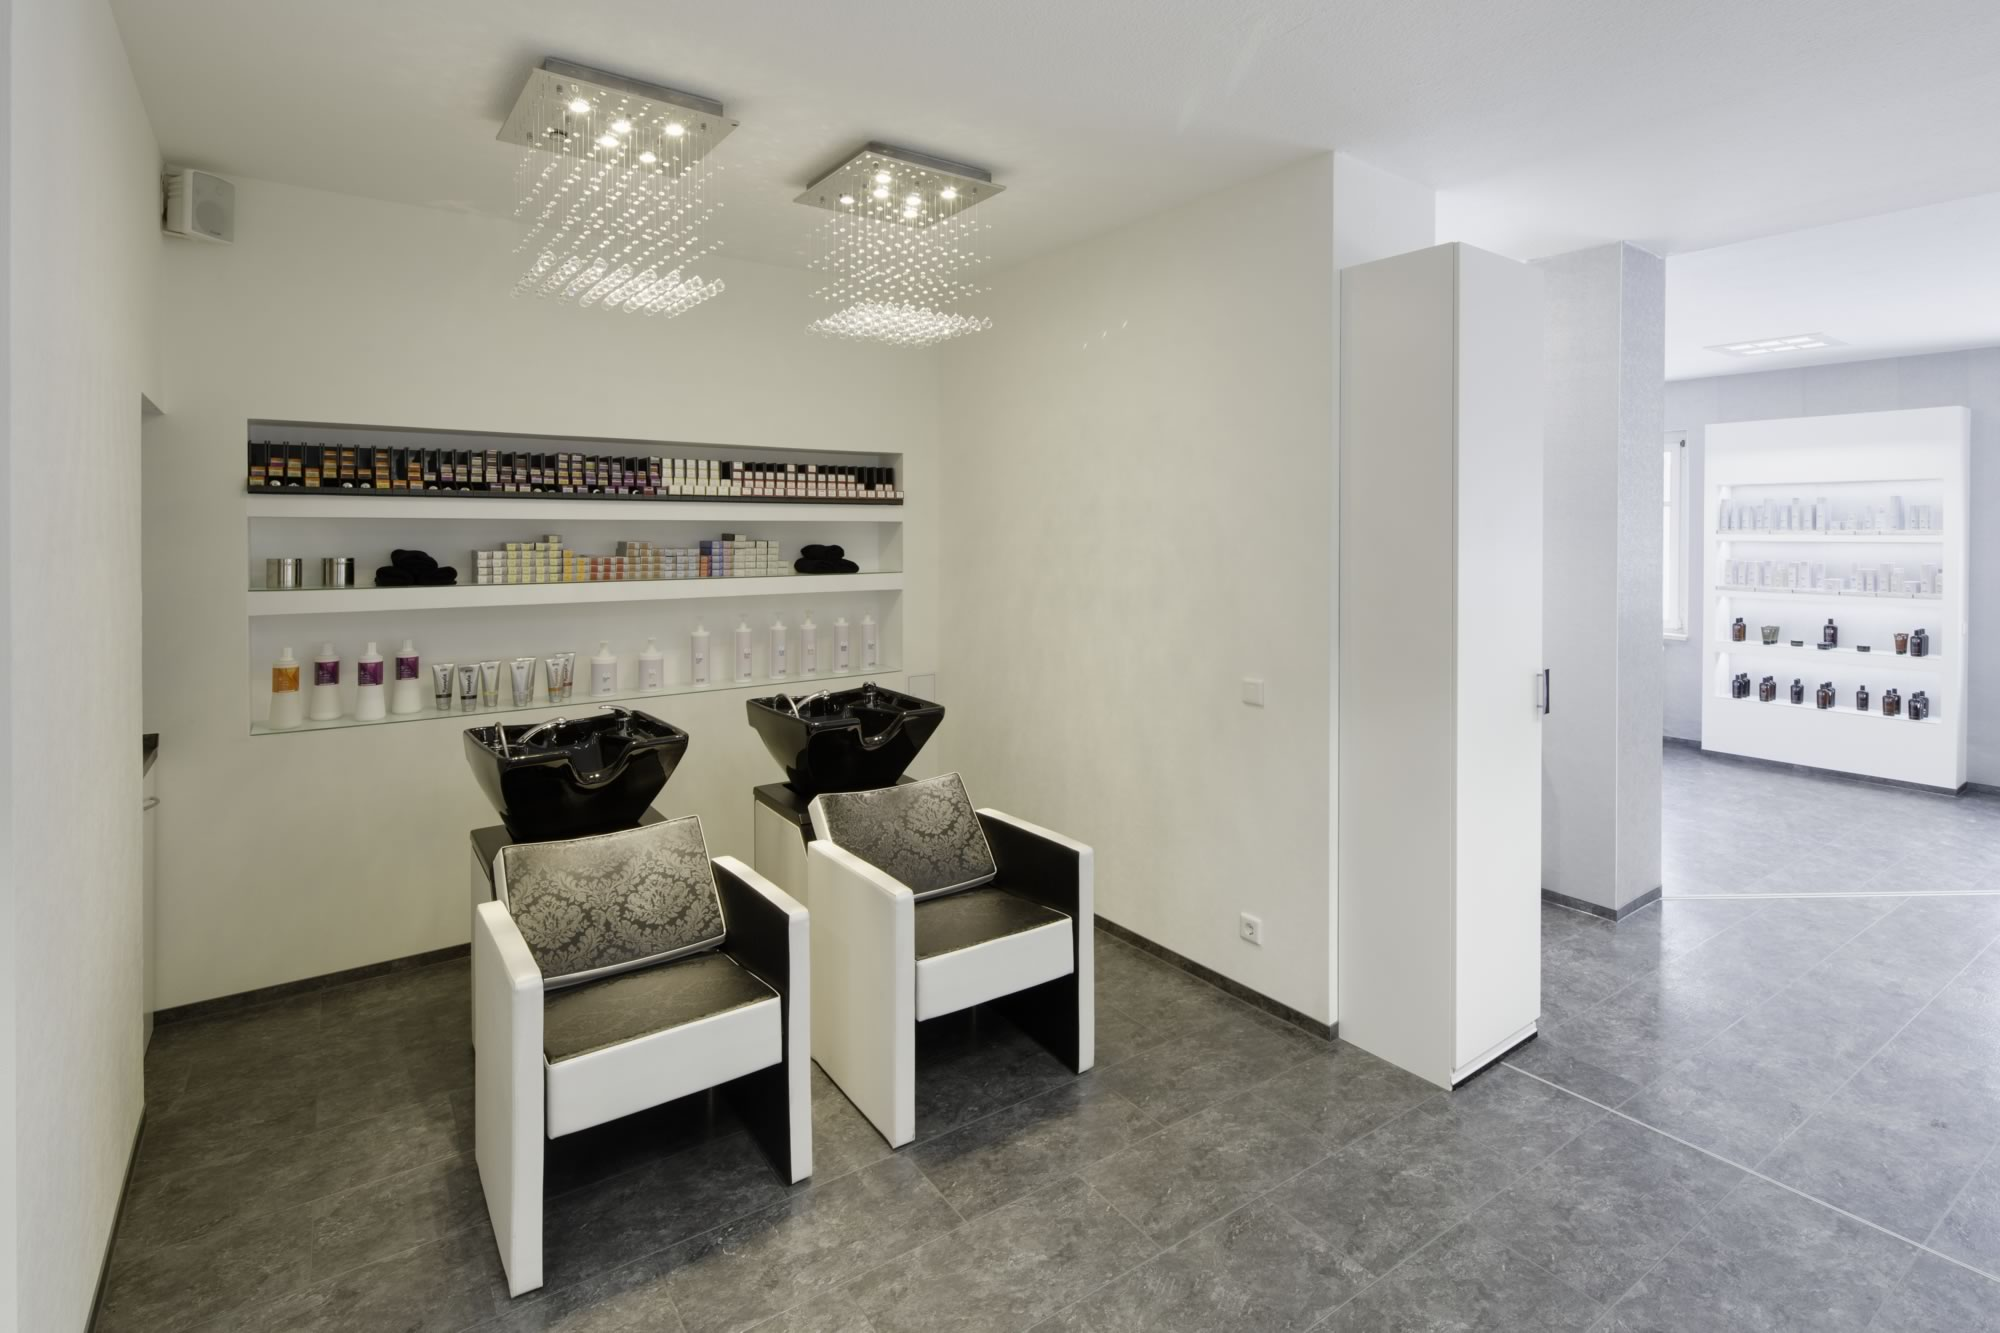 Innenarchitektur Friseursalon - Dr. Michael Flagmeyer Architekten